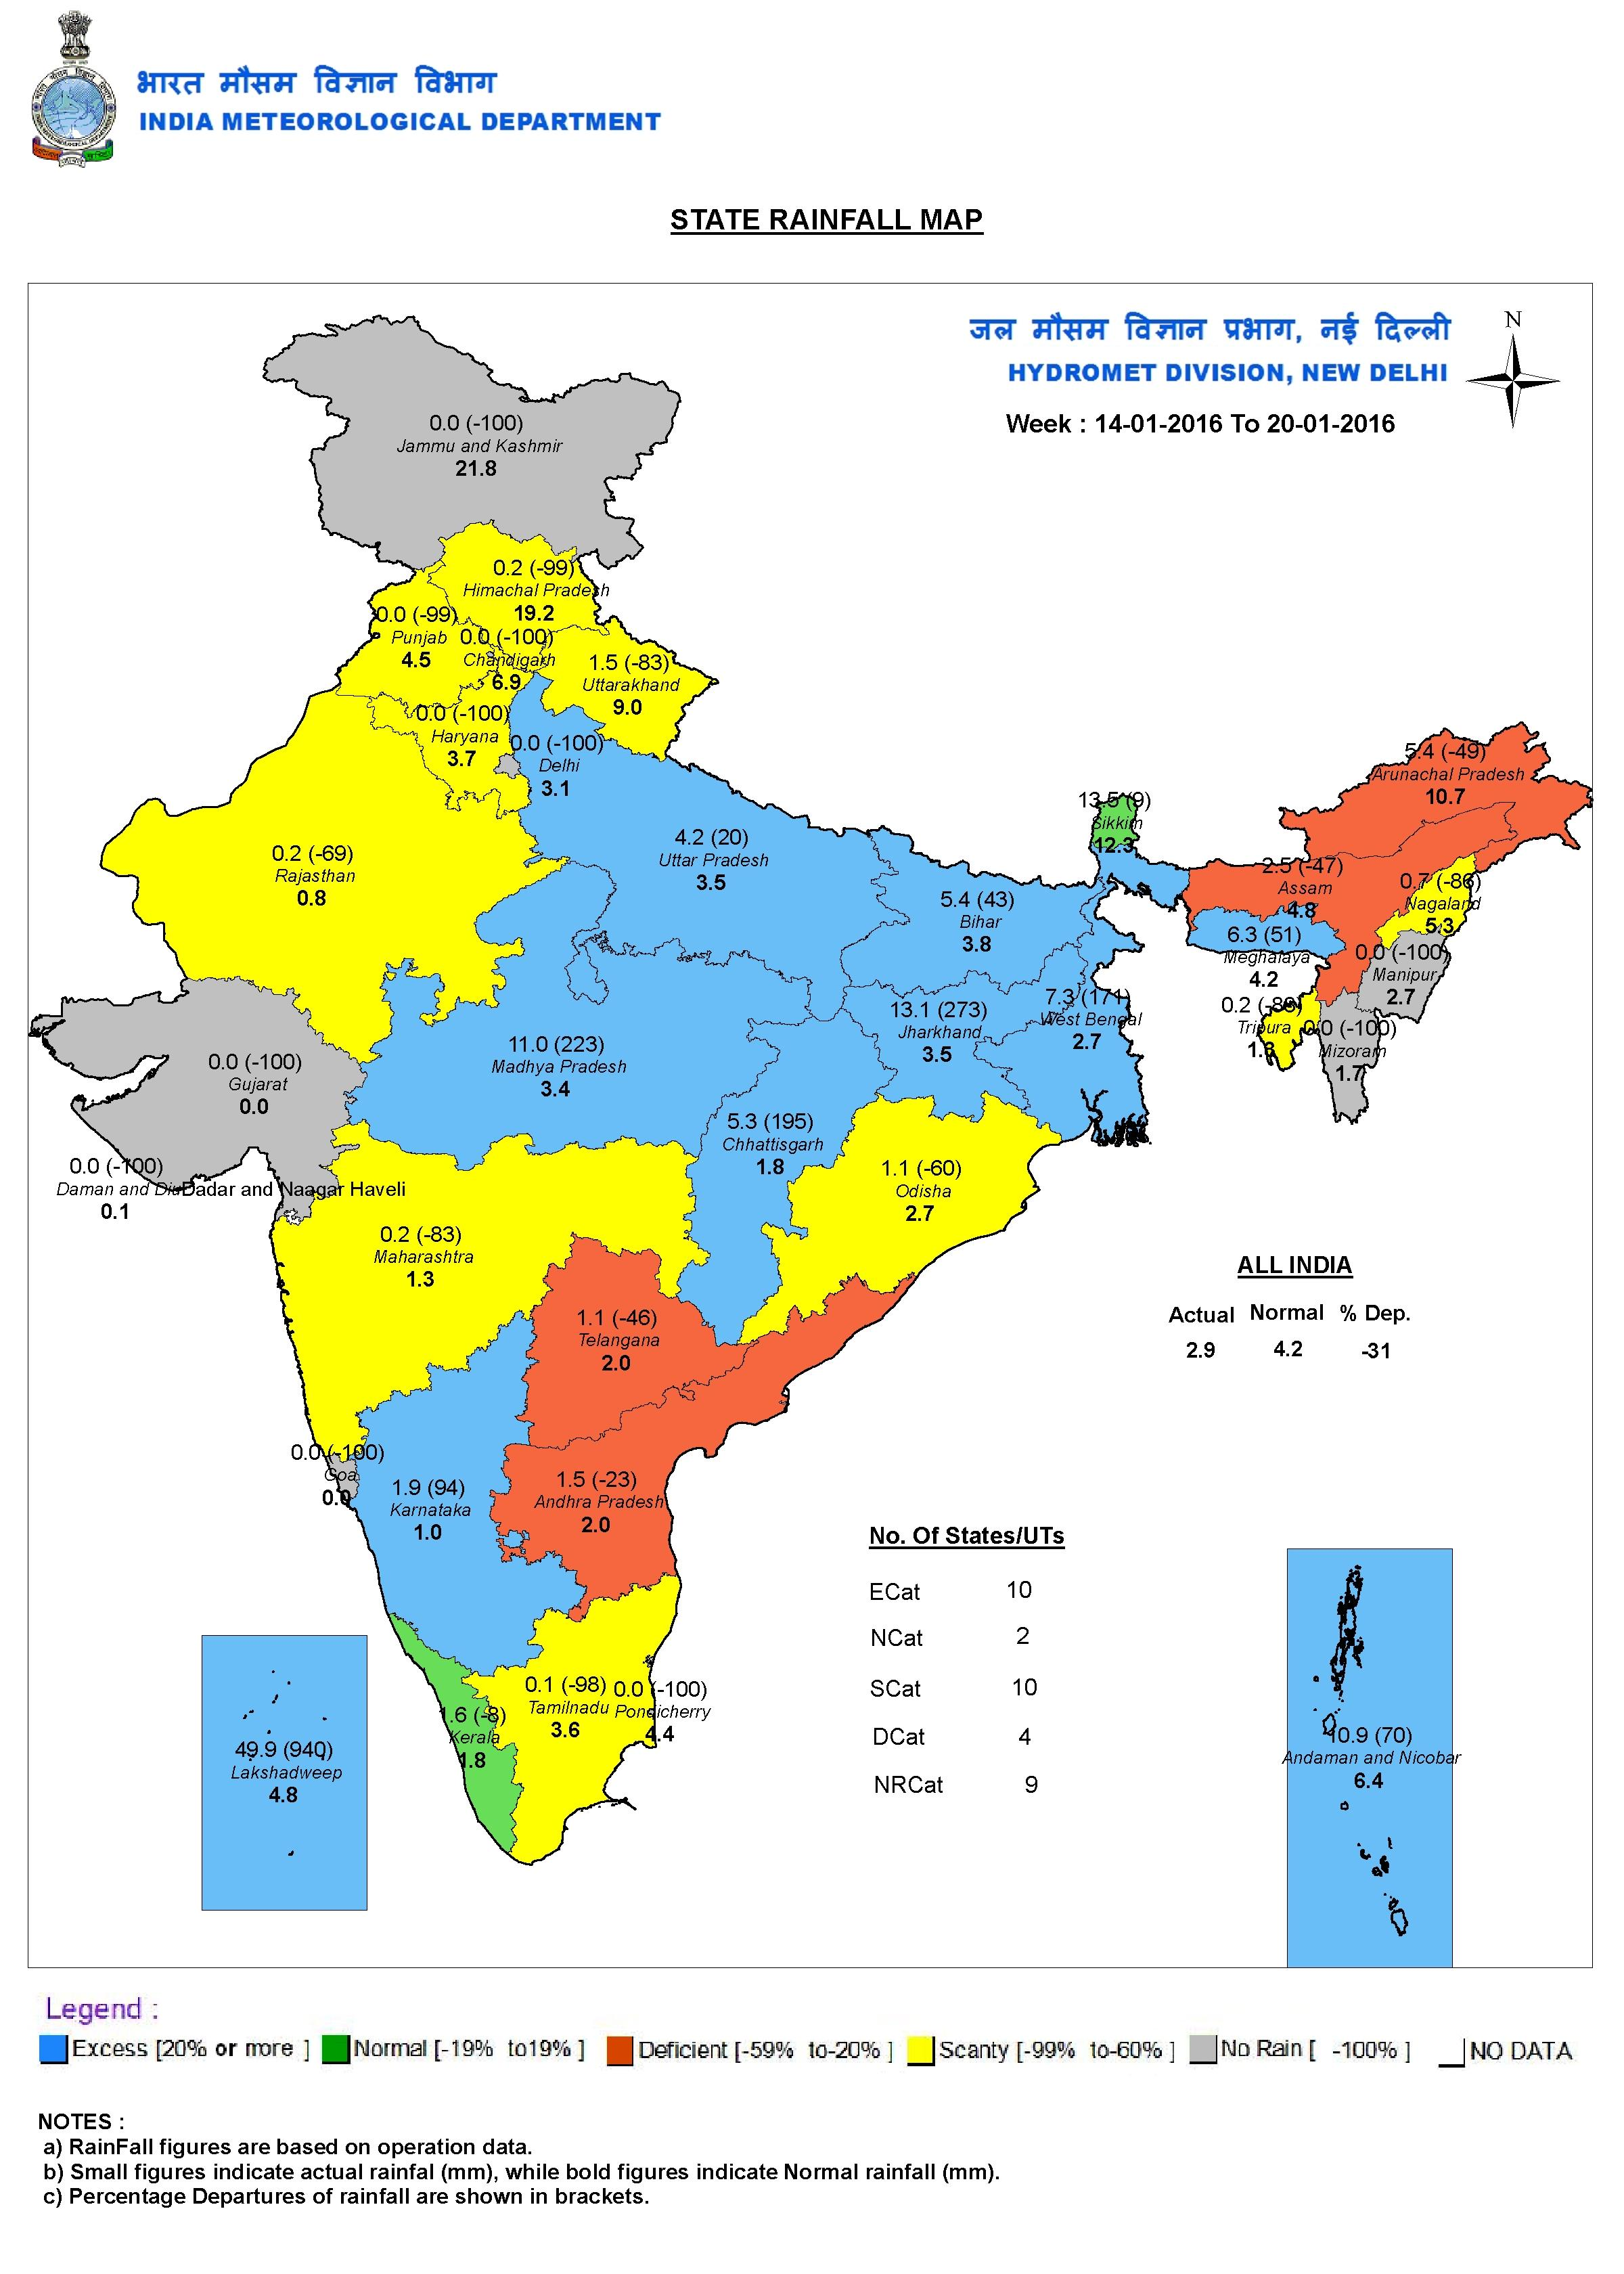 The map shows excess rainfall in central and eastern India between January 14 and 20 January, 2016 